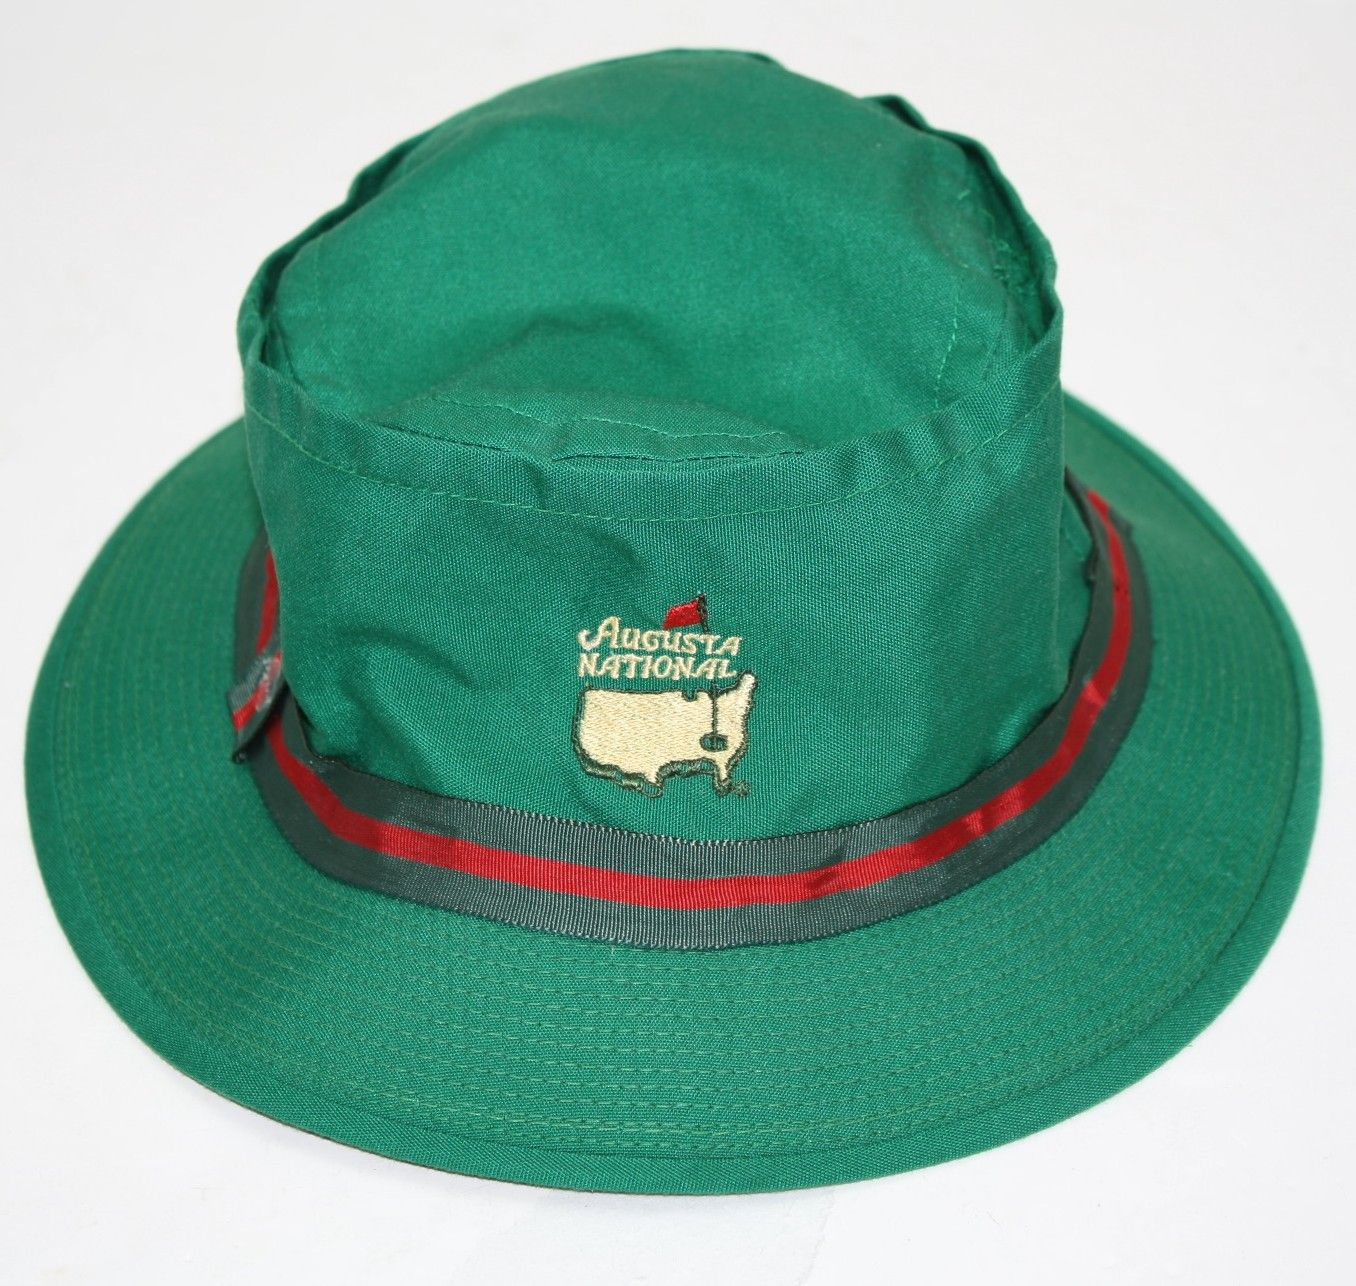 4f486313da7 Lot Detail - Augusta National Golf Club Bucket Hat - Member s Only